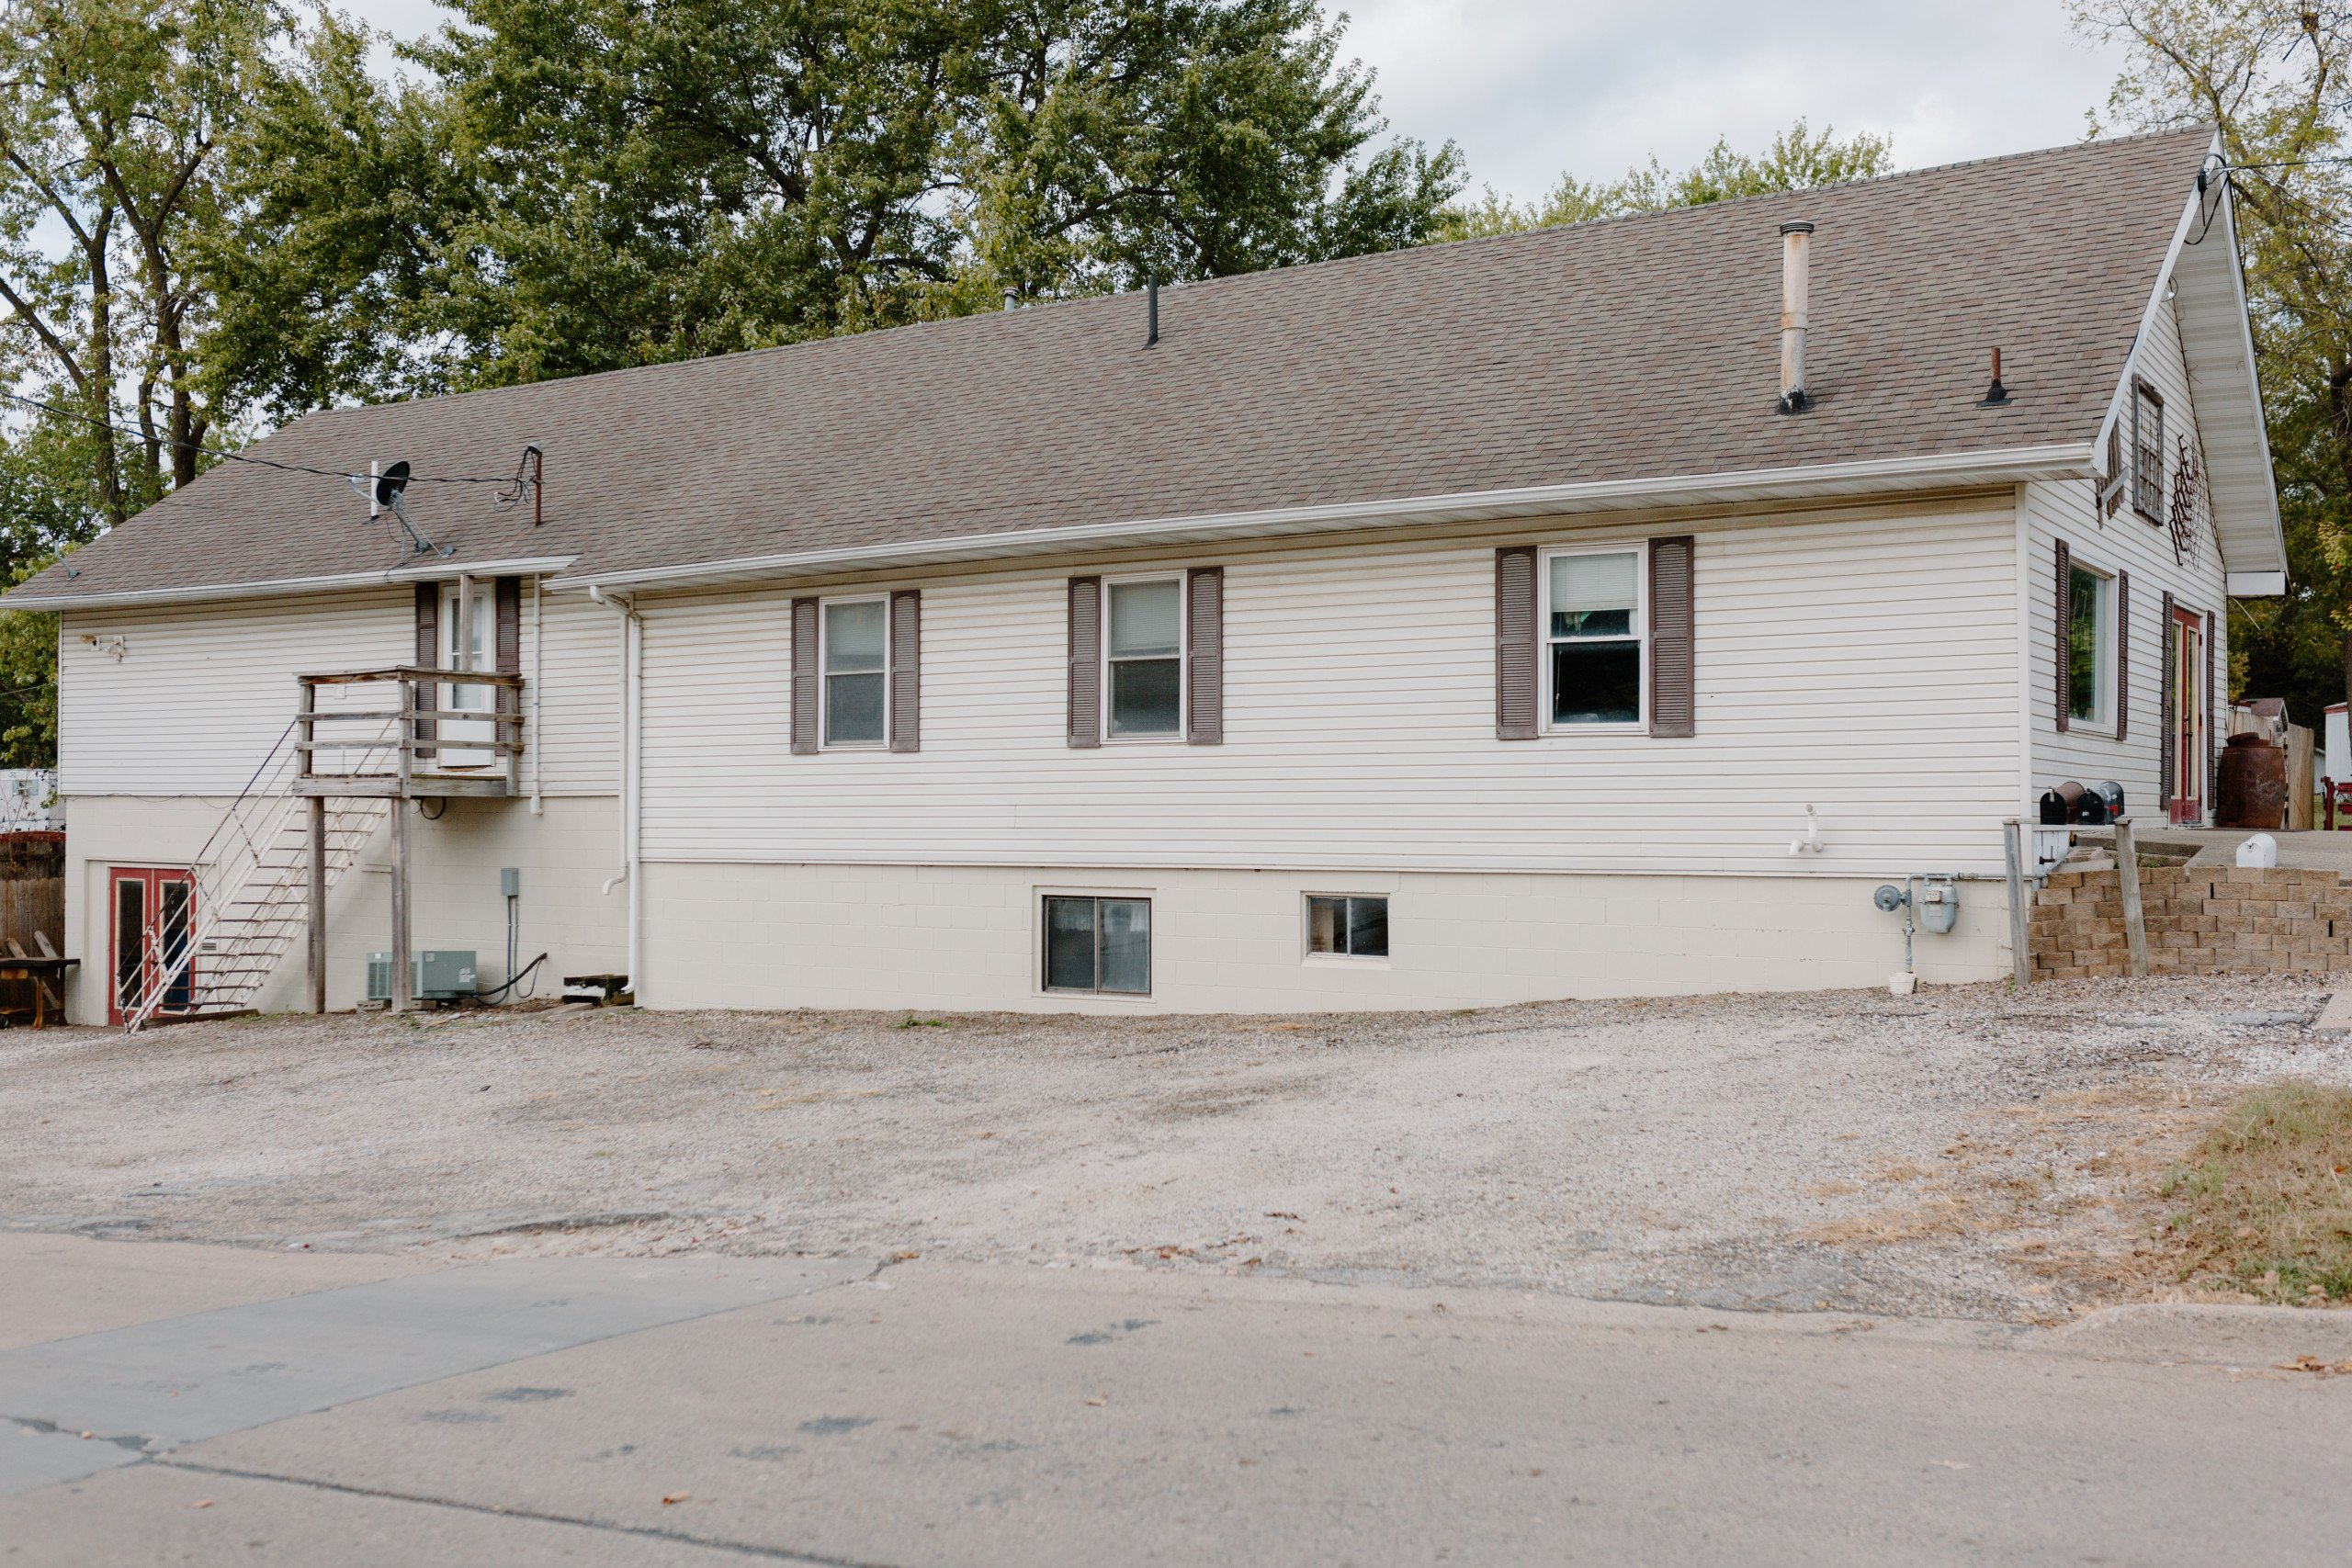 residential-commercial-warren-county-iowa-0-acres-listing-number-15805-AC7A0386-0.jpg